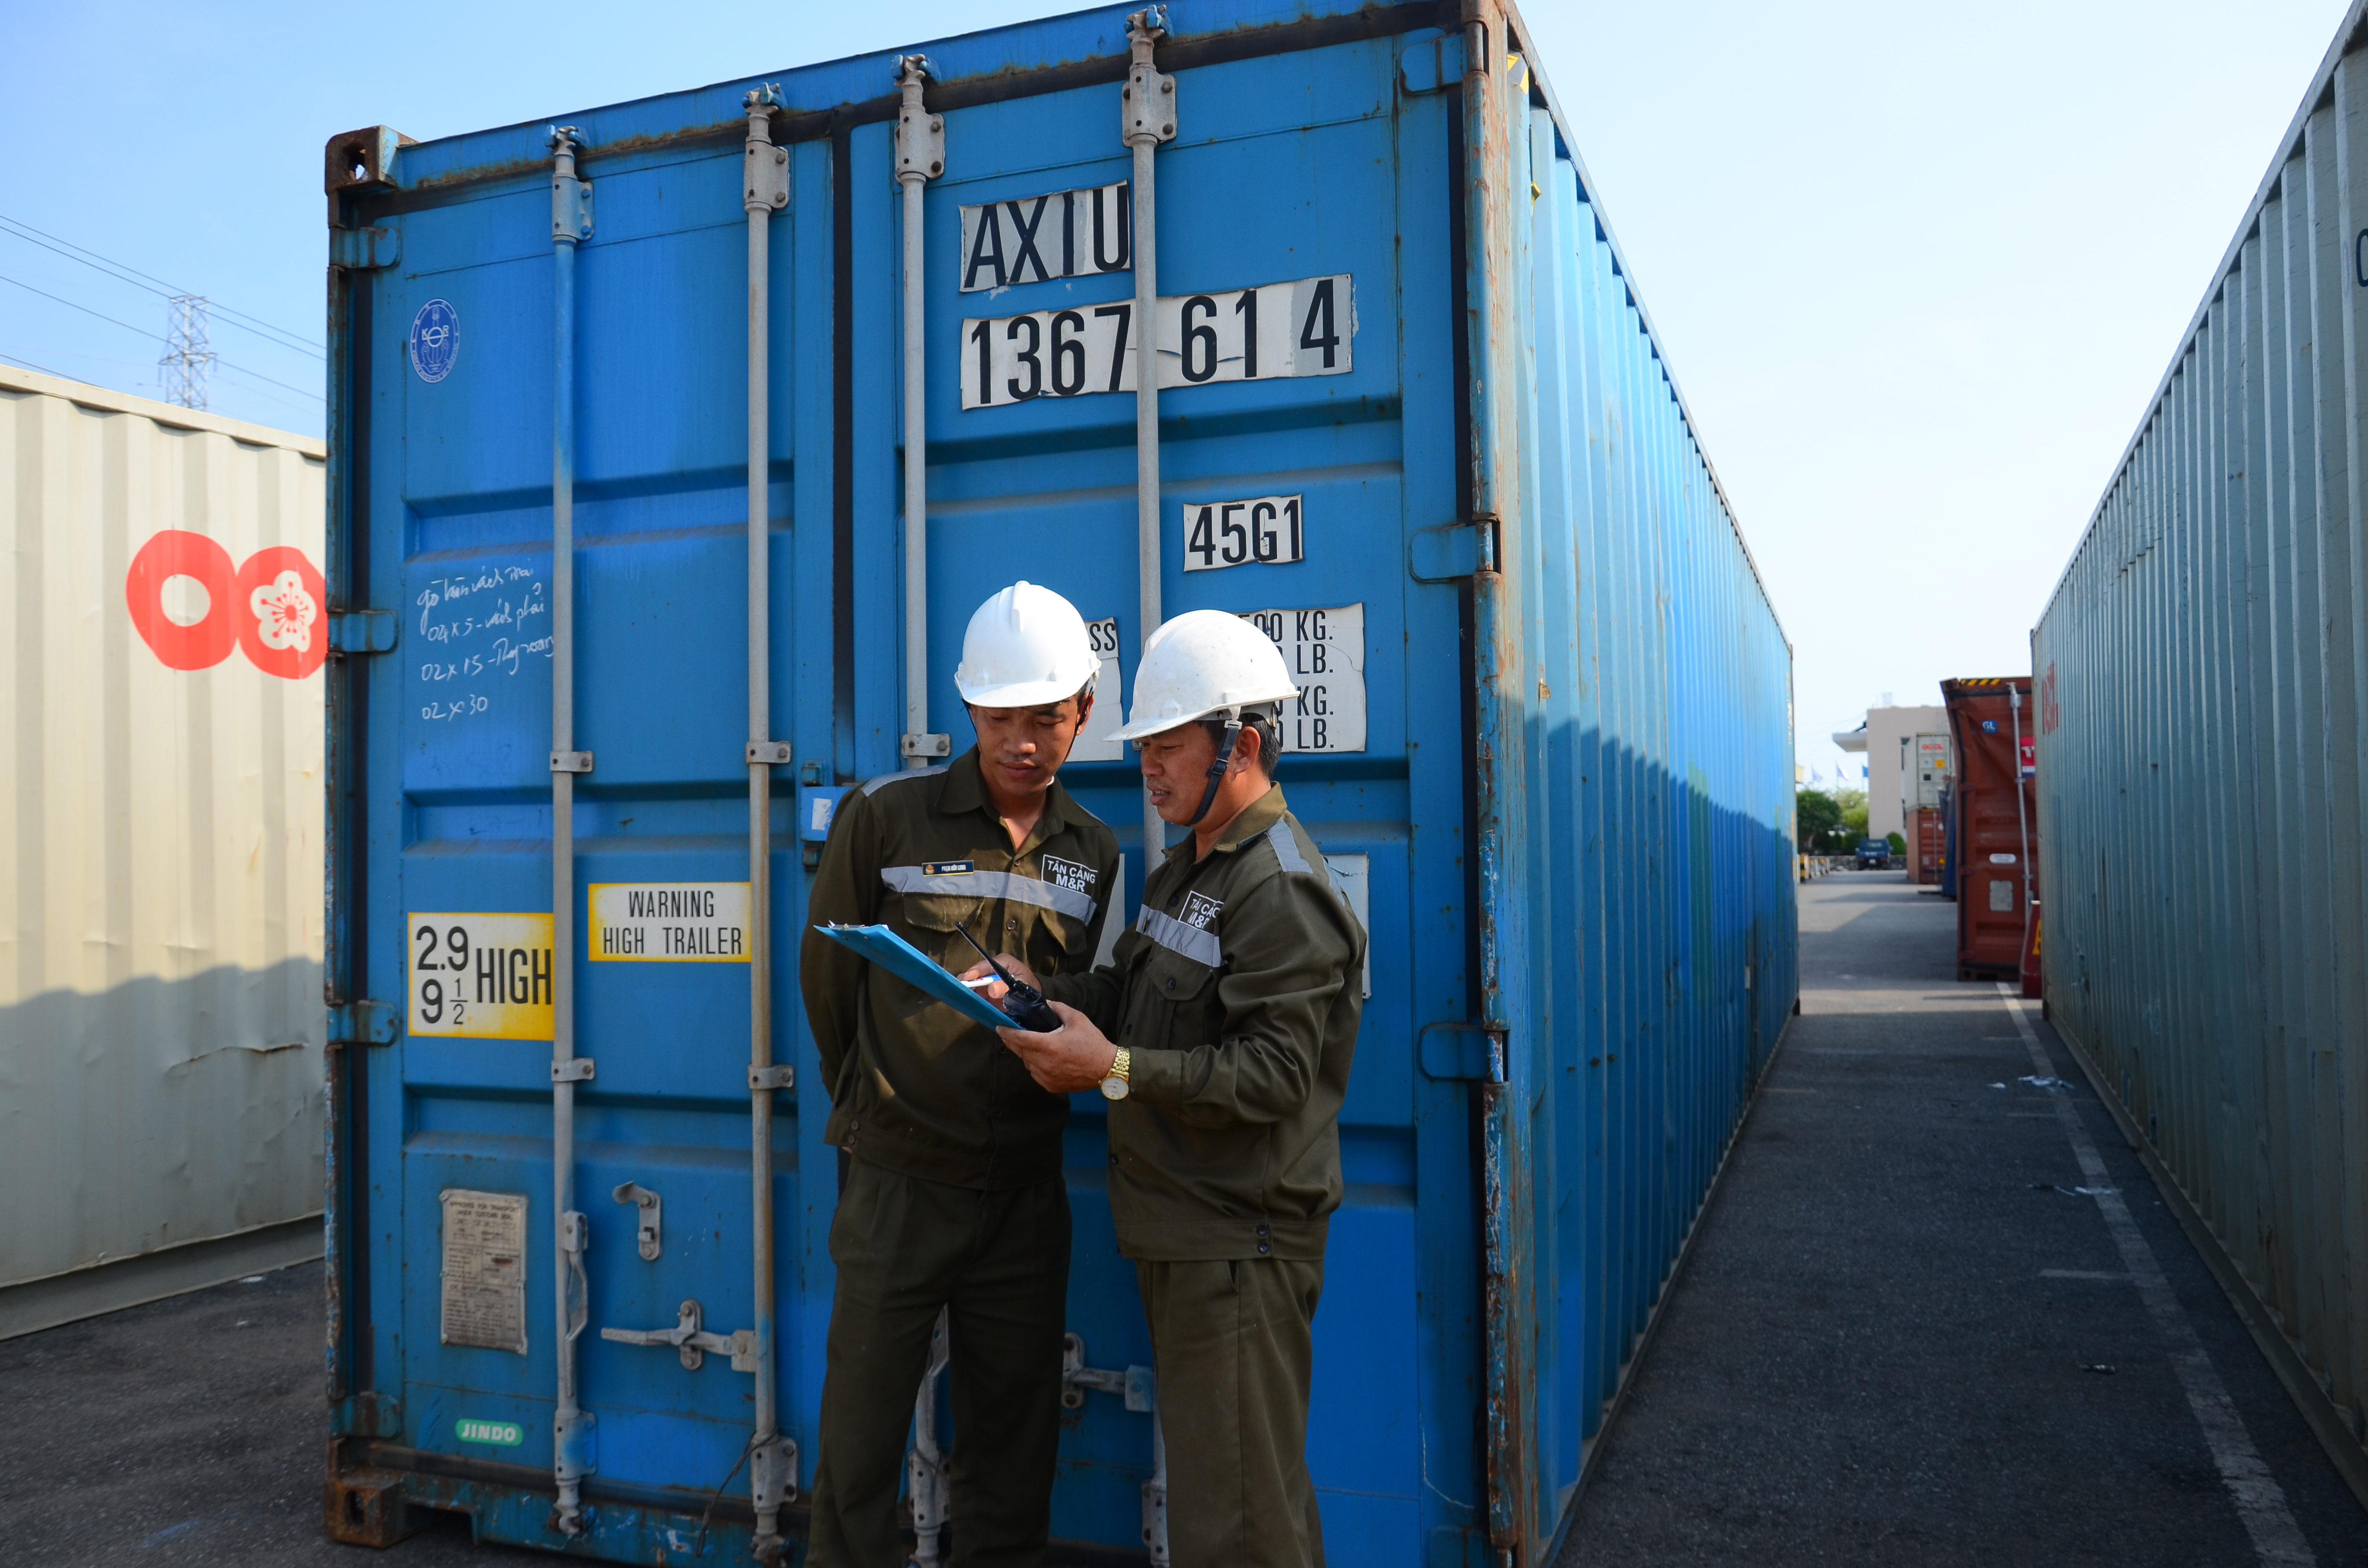 M&R services for containers, trailers, trucks and handling equipment